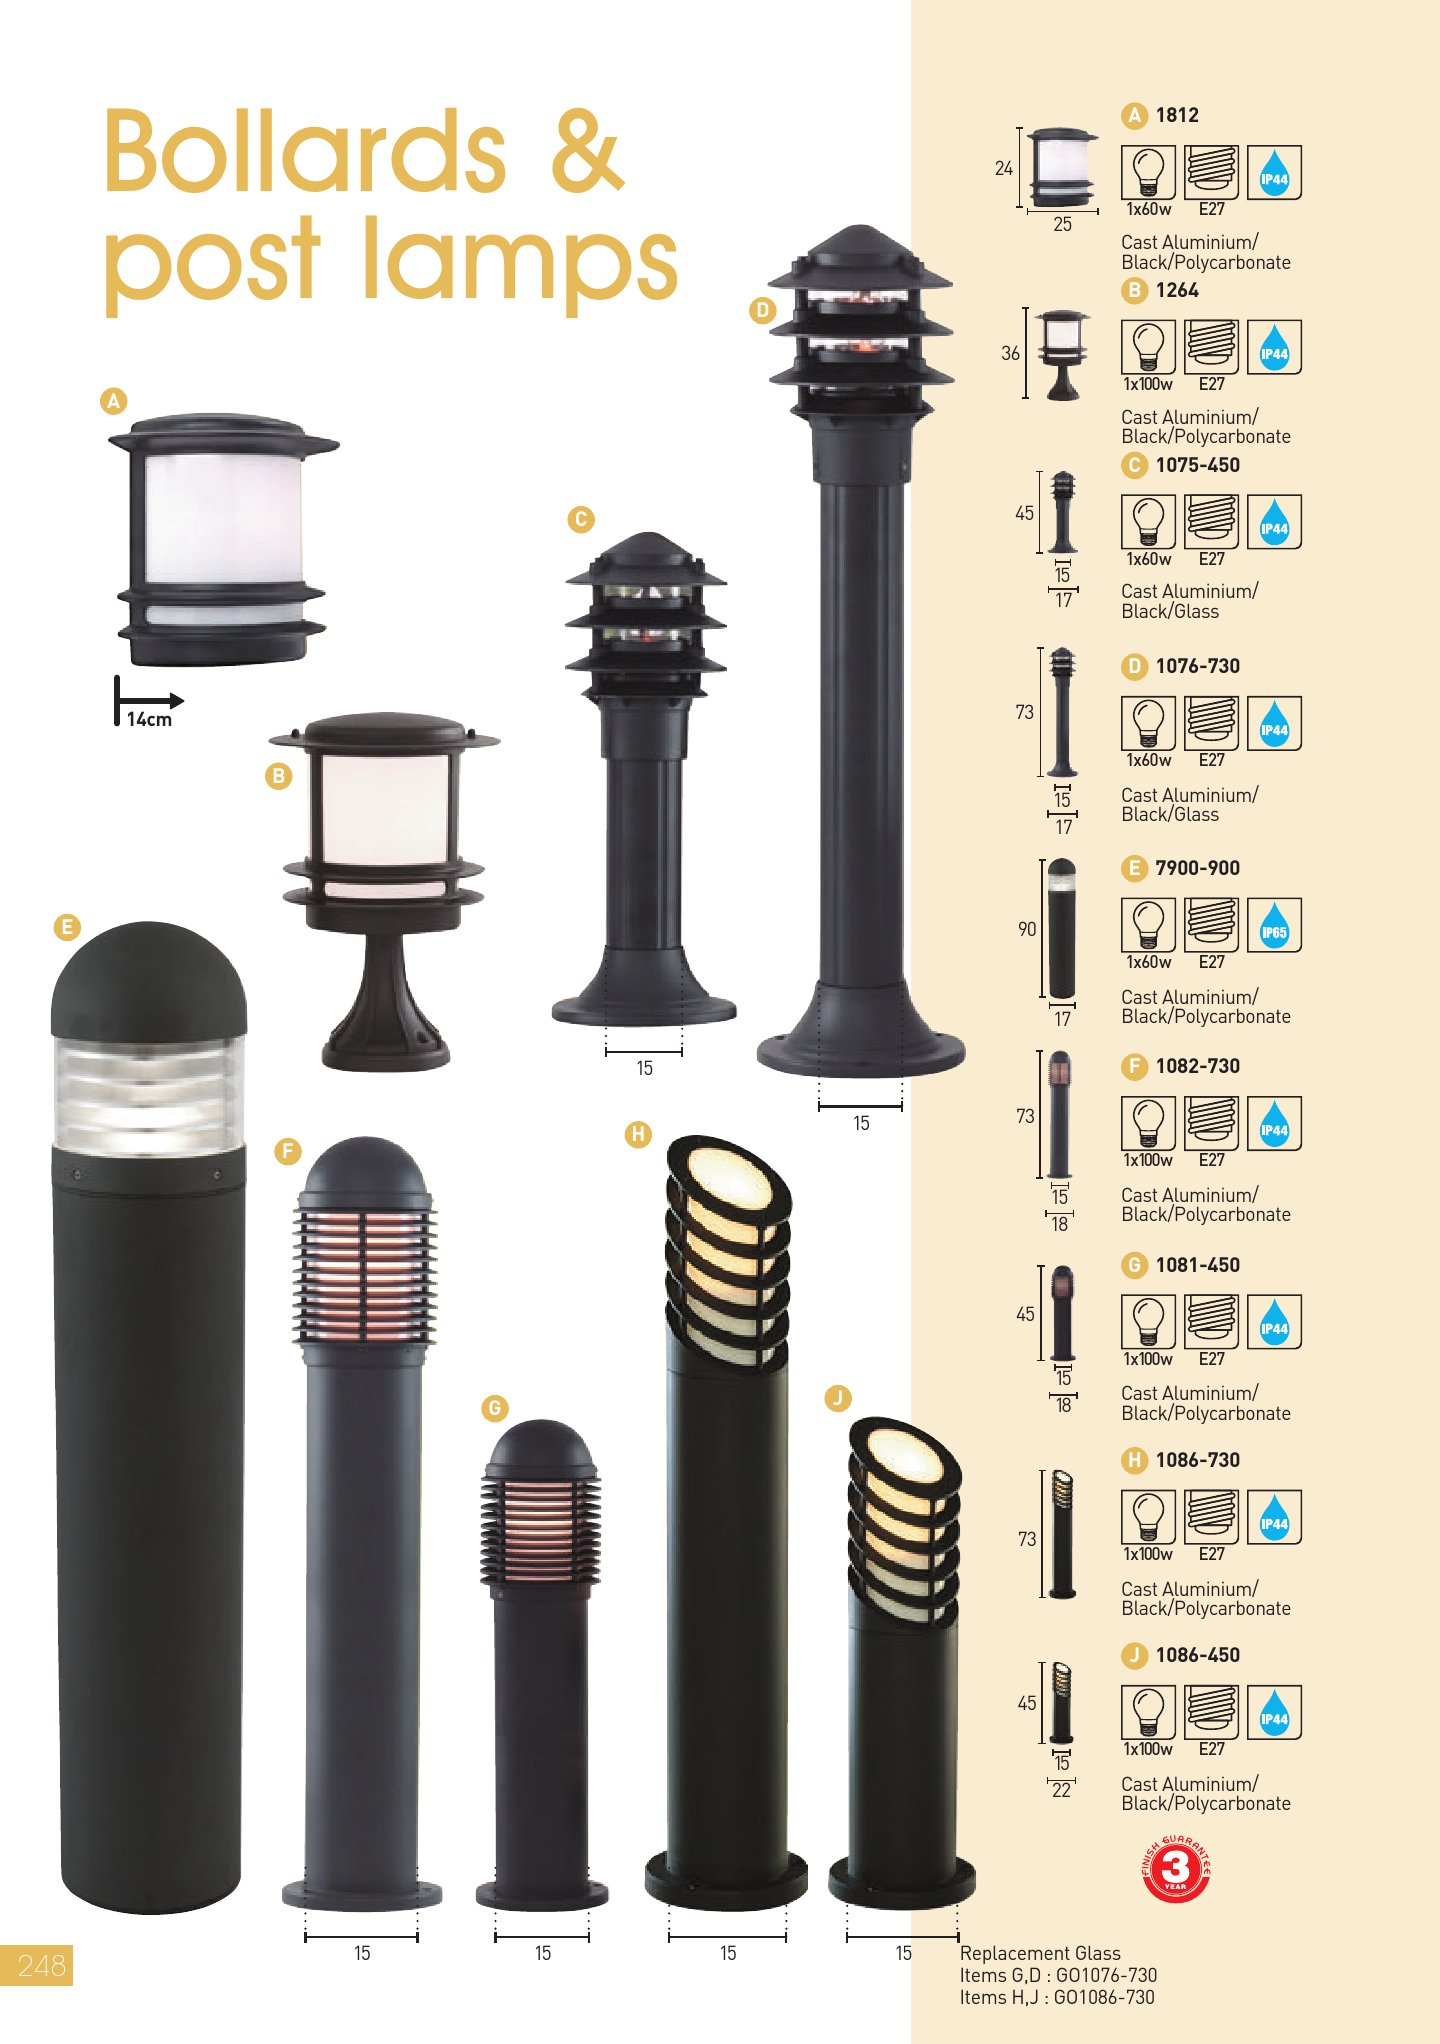 Bollards & Post Lamps 1086 450